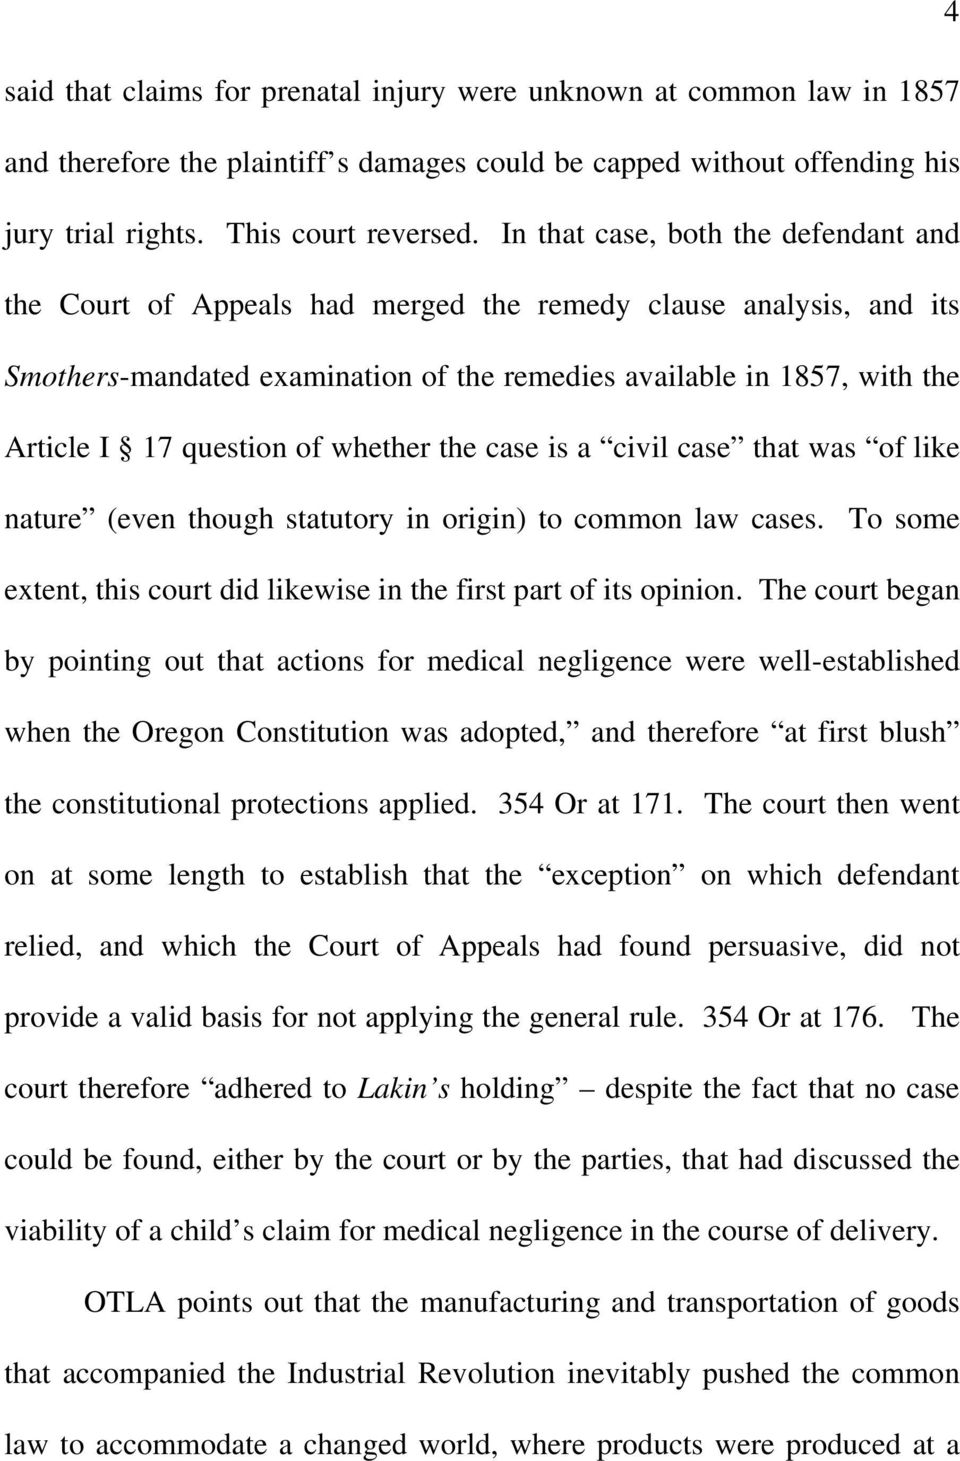 question of whether the case is a civil case that was of like nature (even though statutory in origin) to common law cases. To some extent, this court did likewise in the first part of its opinion.